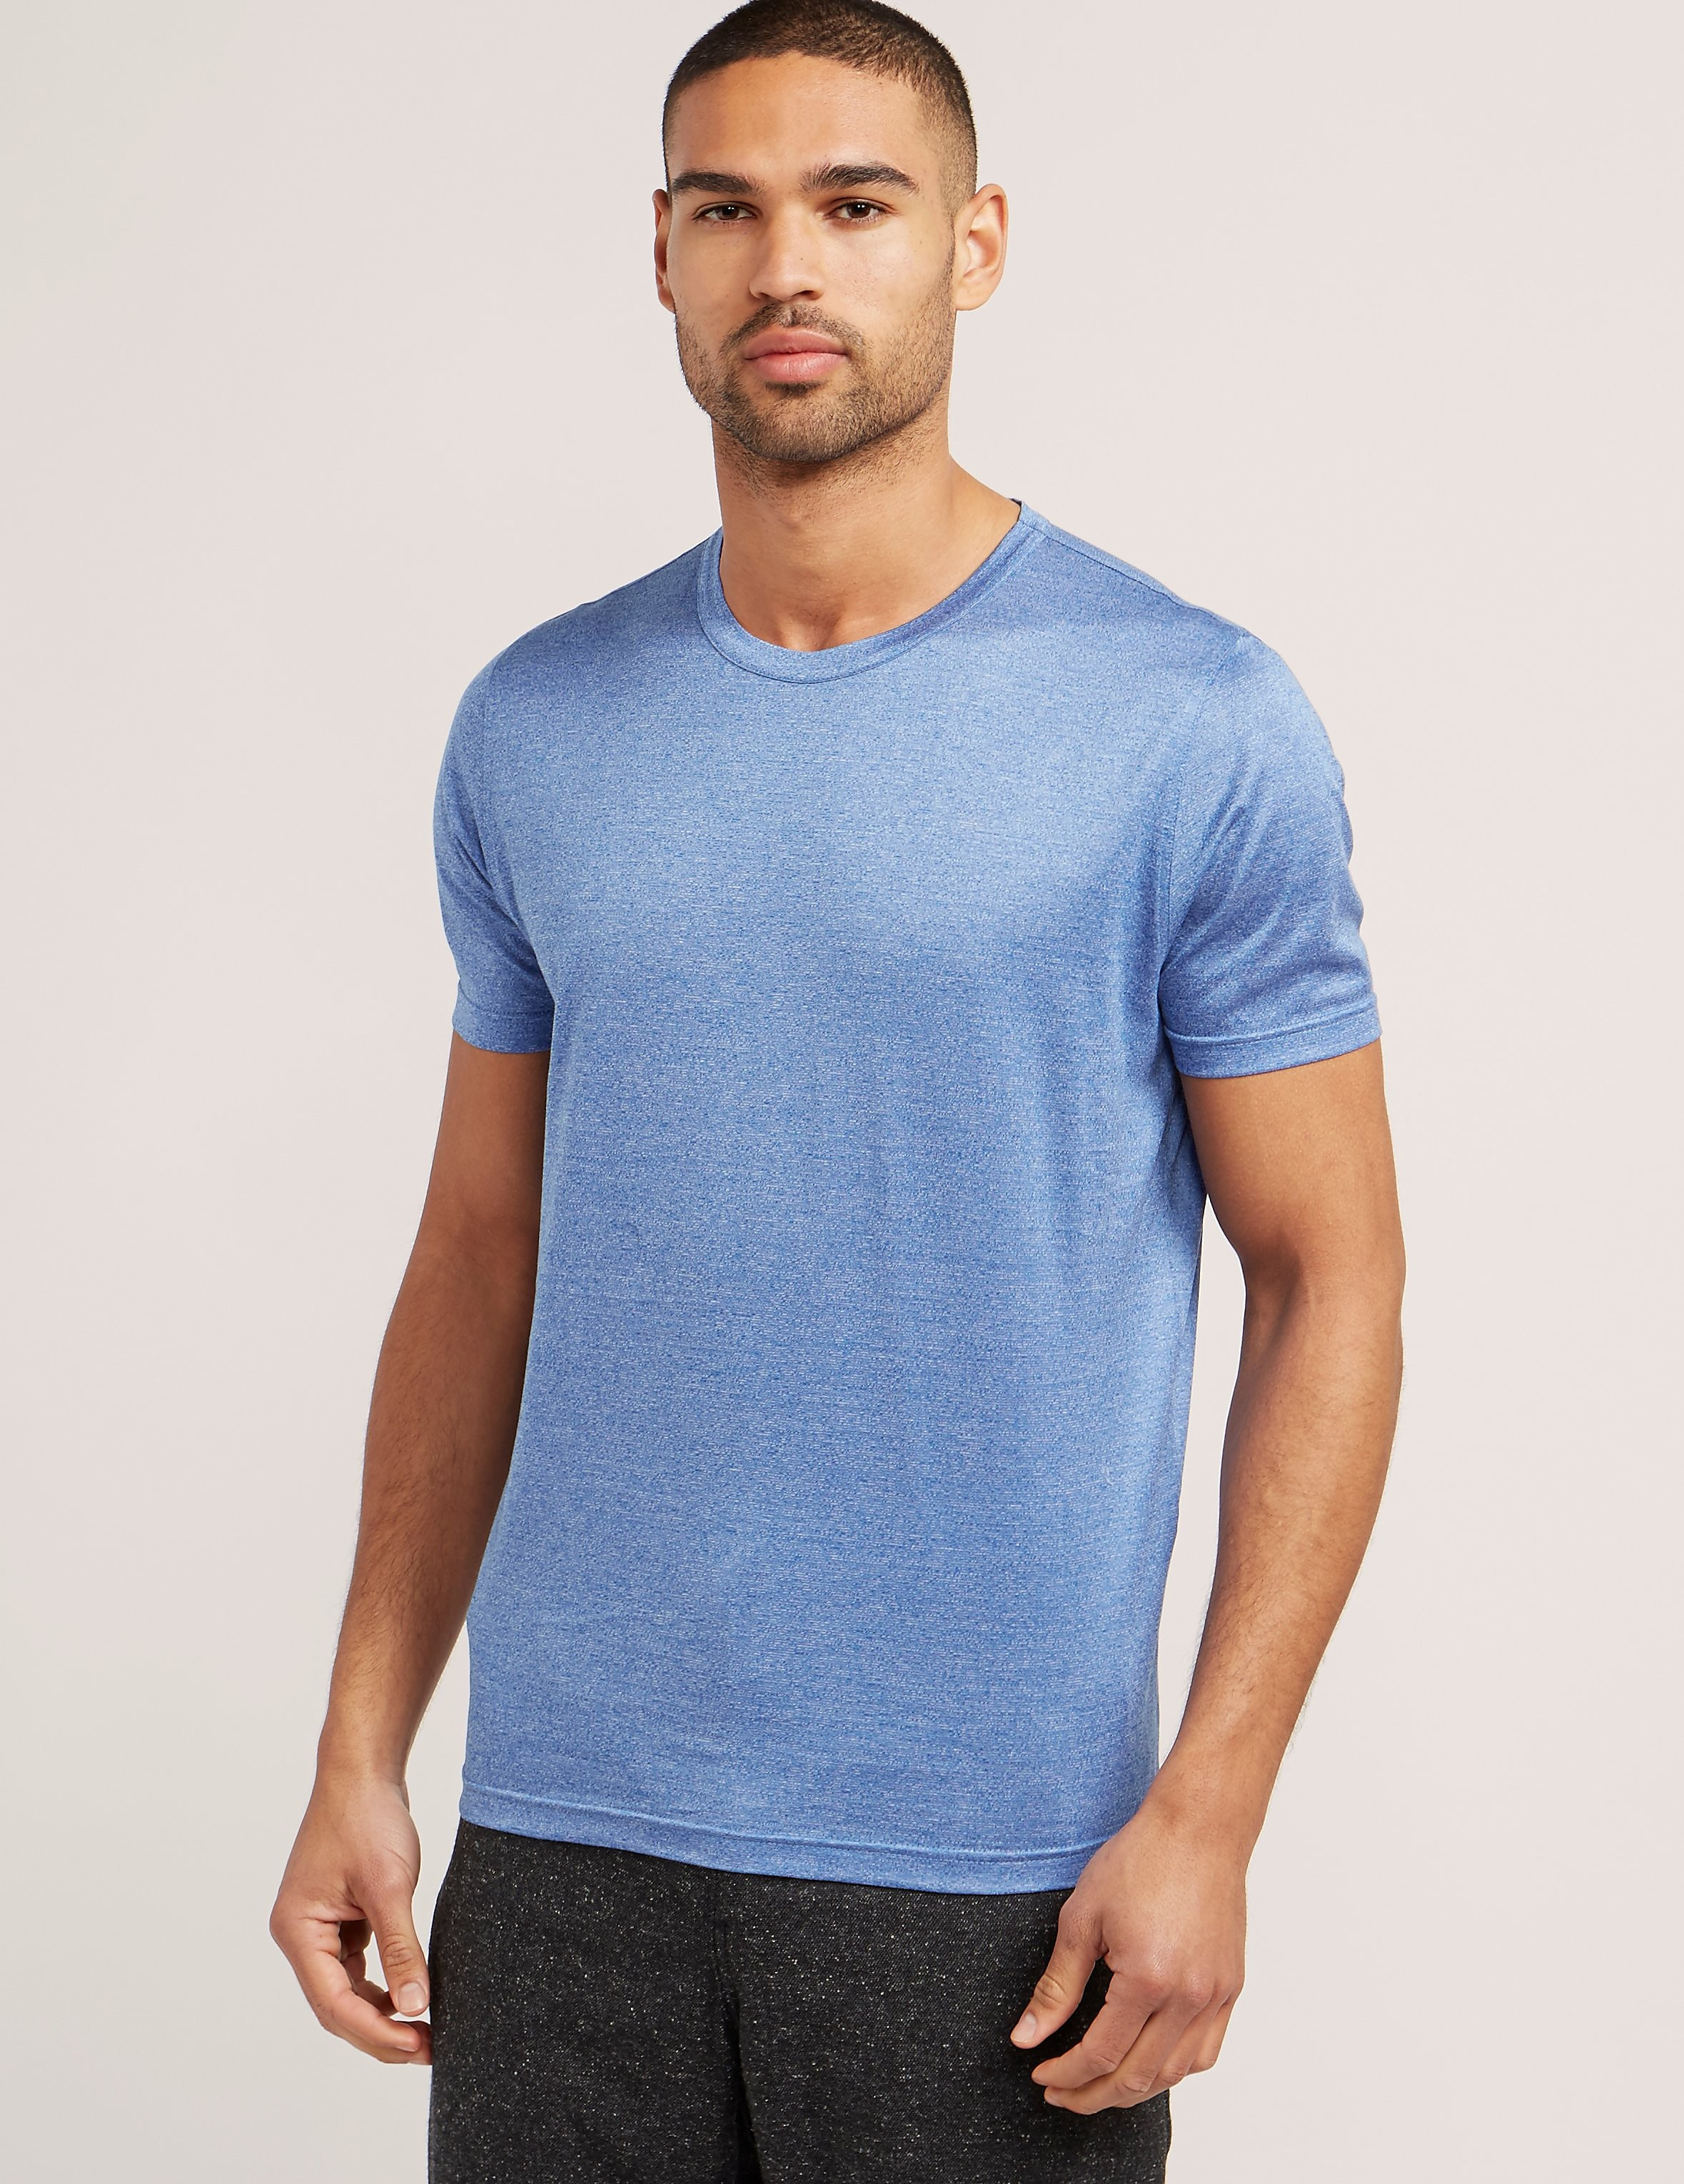 Gran Sasso Stripe Short Sleeve T-Shirt